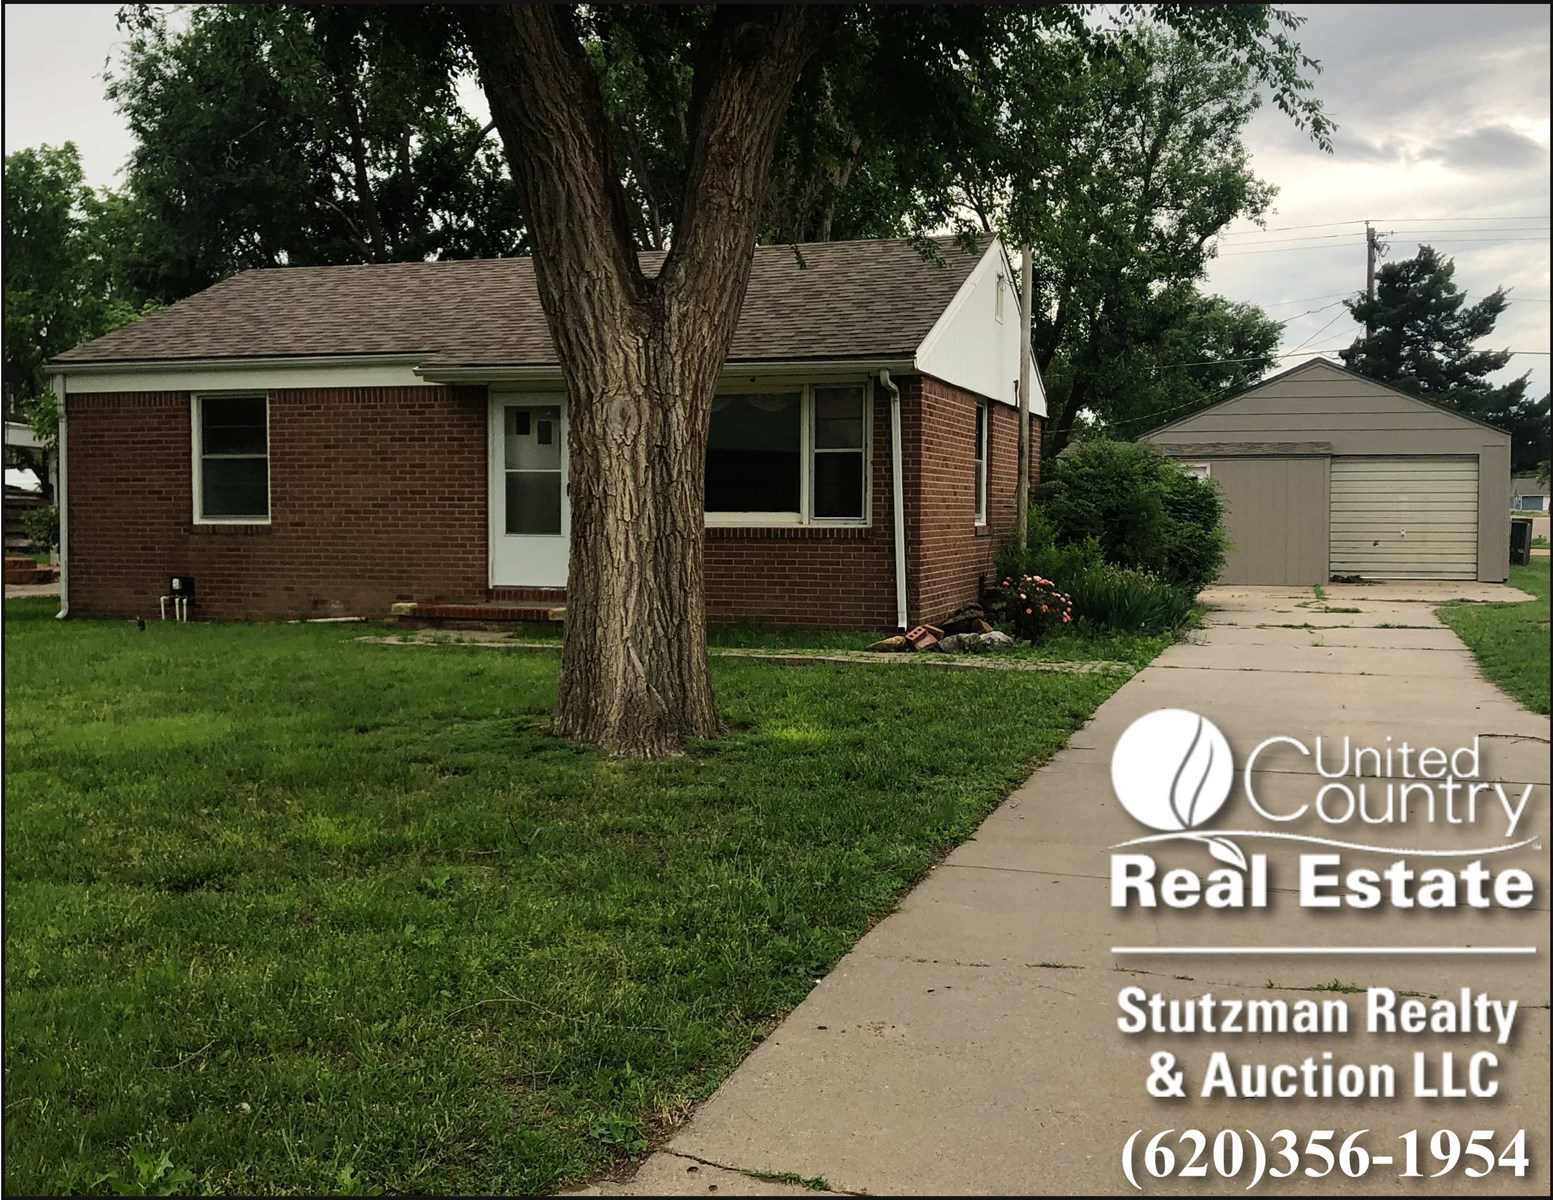 2 BEDROOM BRICK HOME FOR SALE IN ULYSSES, KS